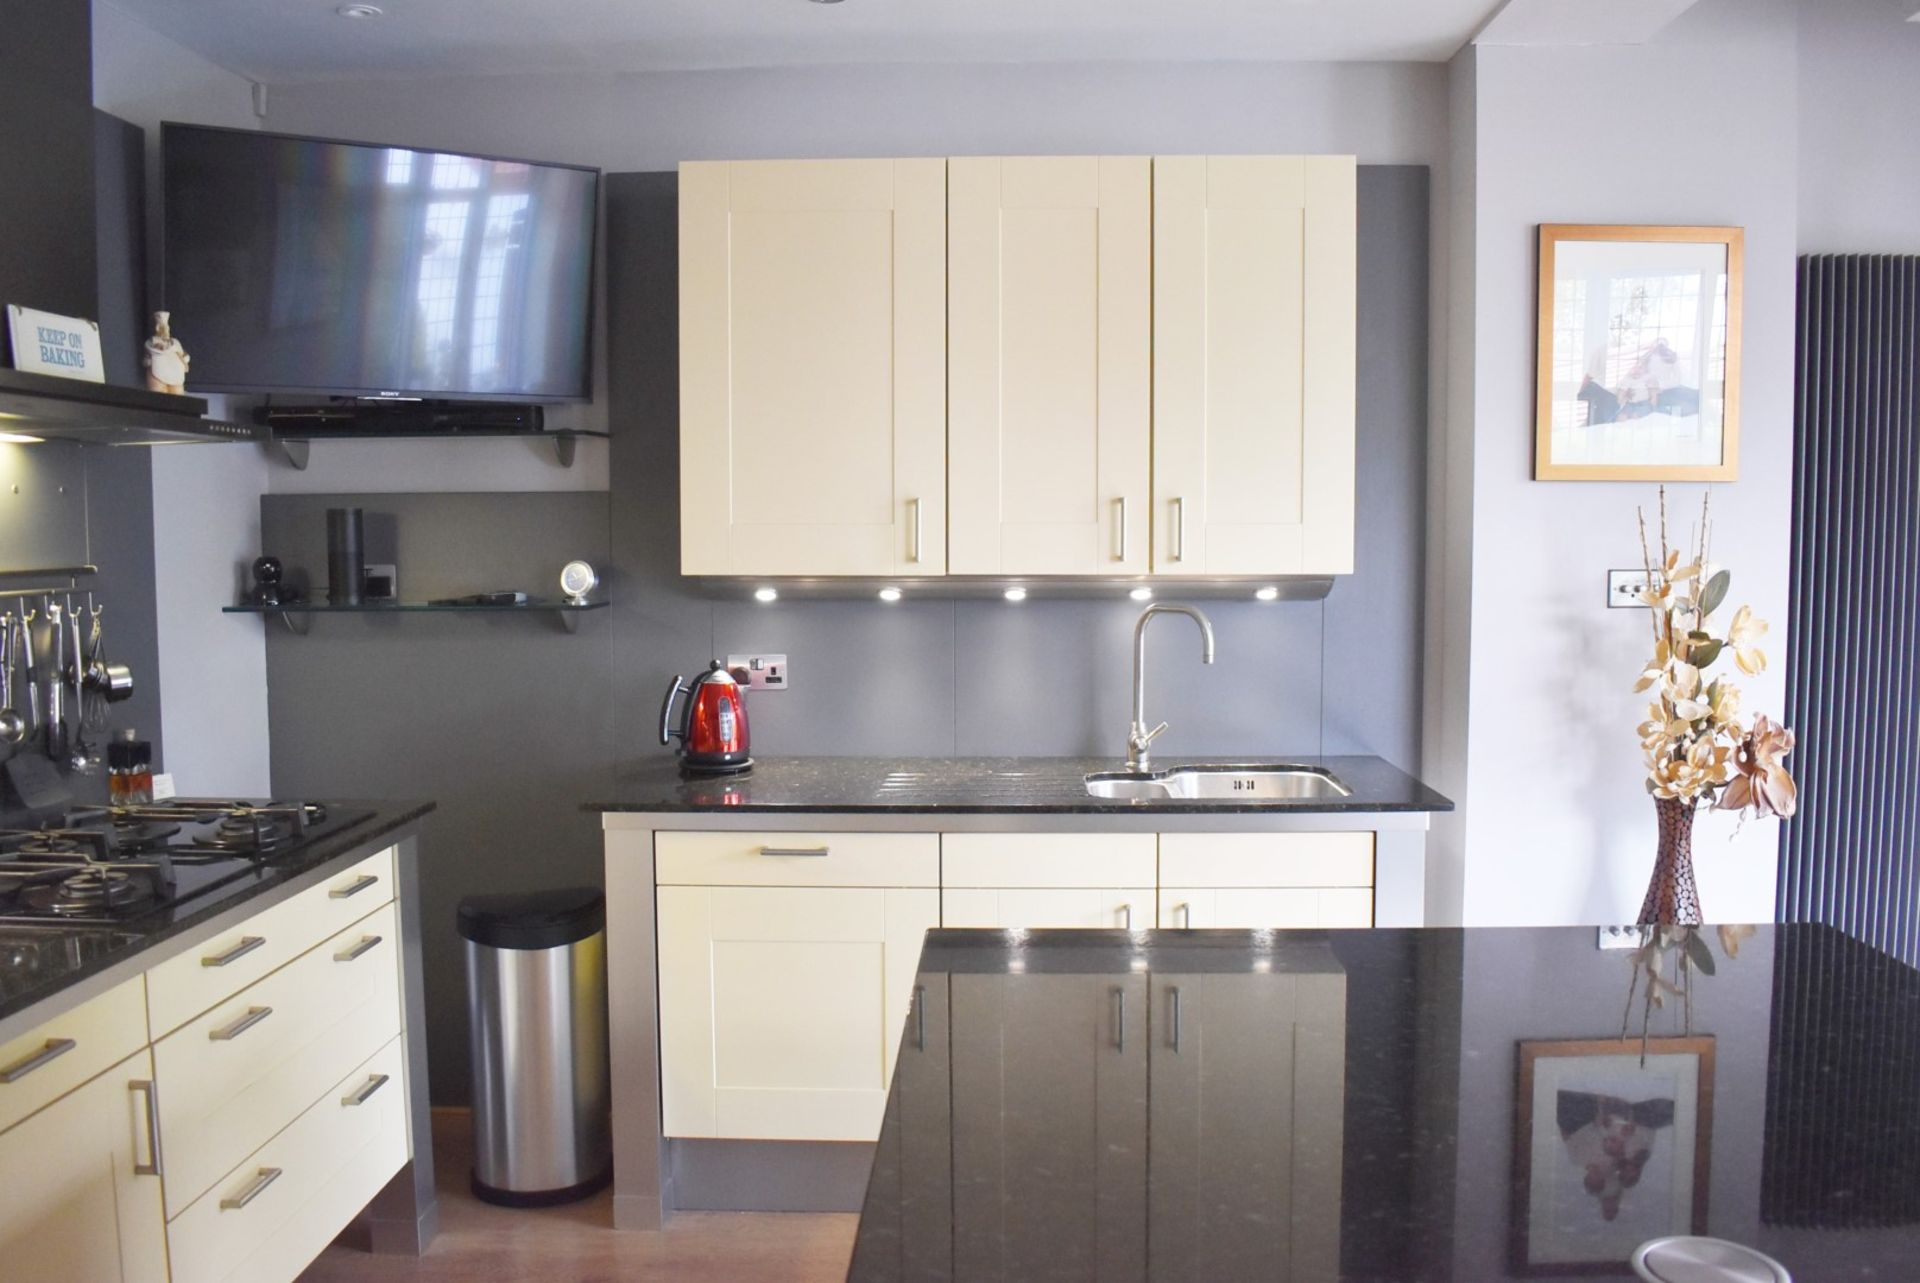 1 x SieMatic Contemporary Fitted Kitchen With Appliances - Features Shaker Style Doors, Central - Image 24 of 96